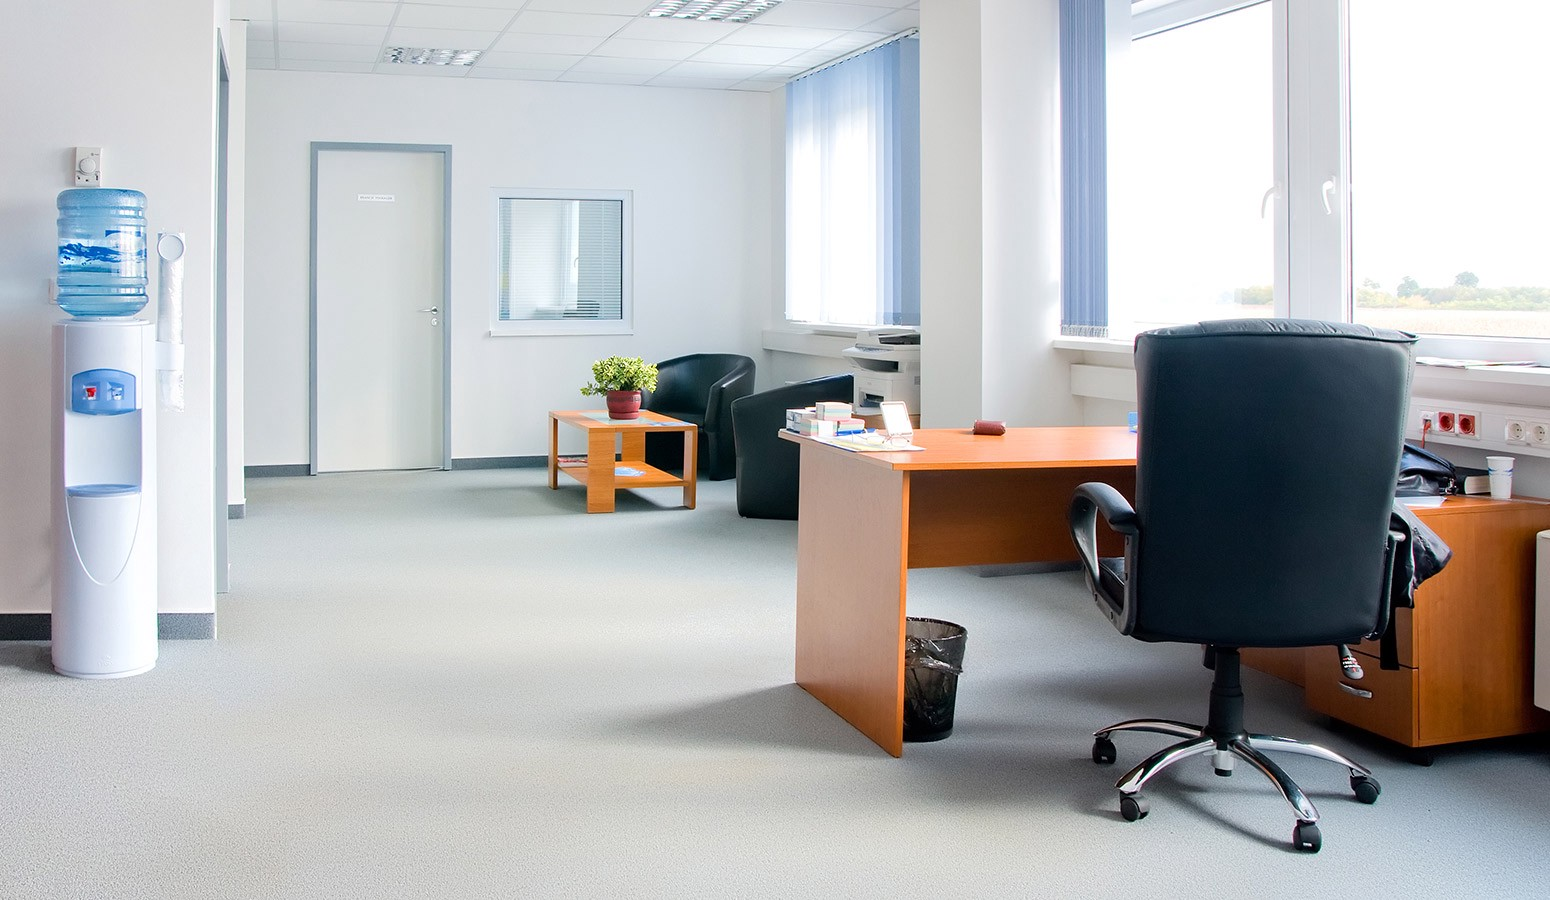 Need of cleaning services in offices